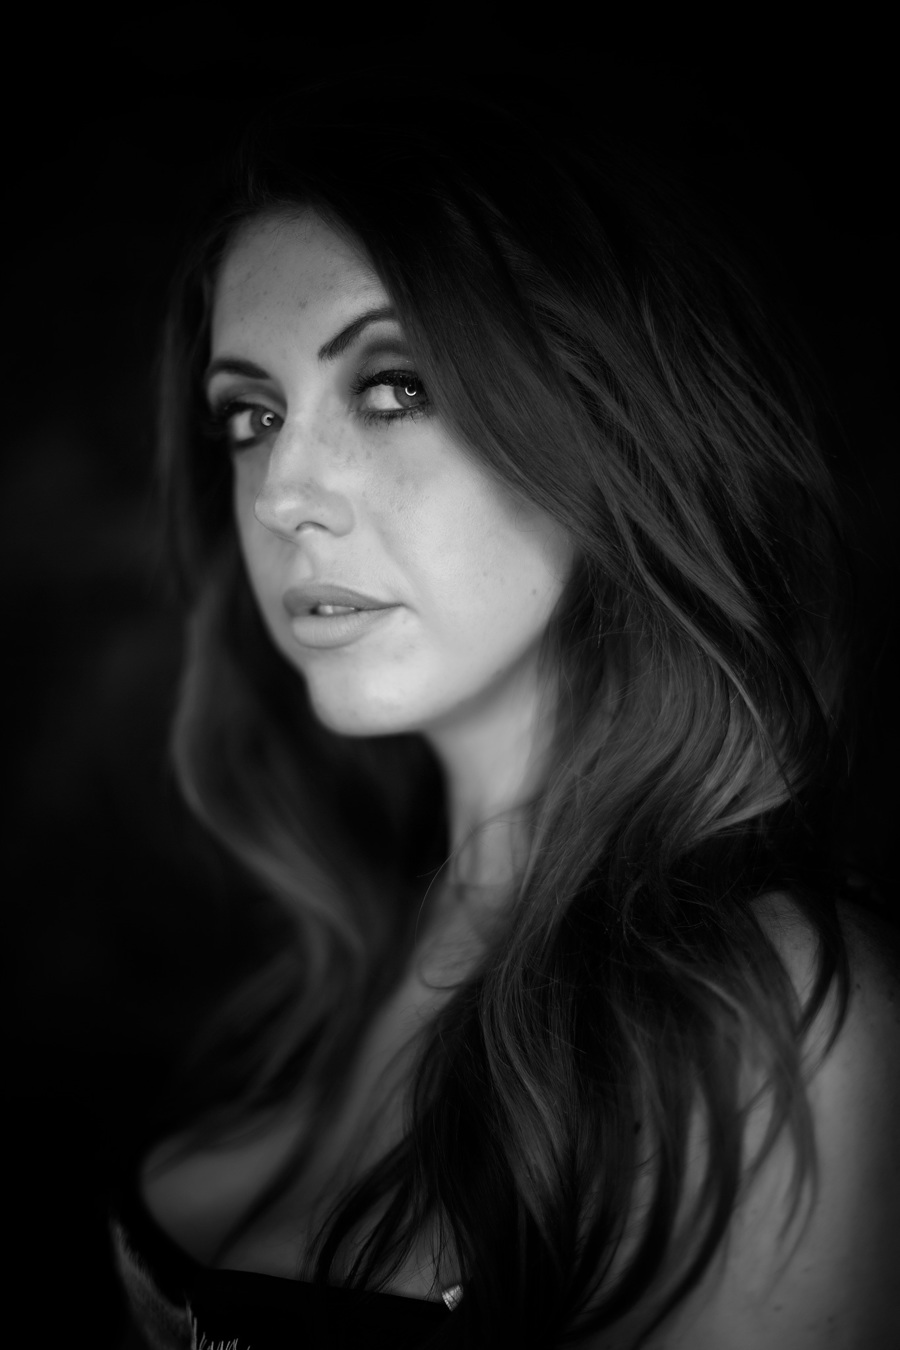 Lauren in B&W / Photography by Paul Anthony Photography, Post processing by Paul Anthony Photography / Uploaded 31st July 2016 @ 10:31 AM